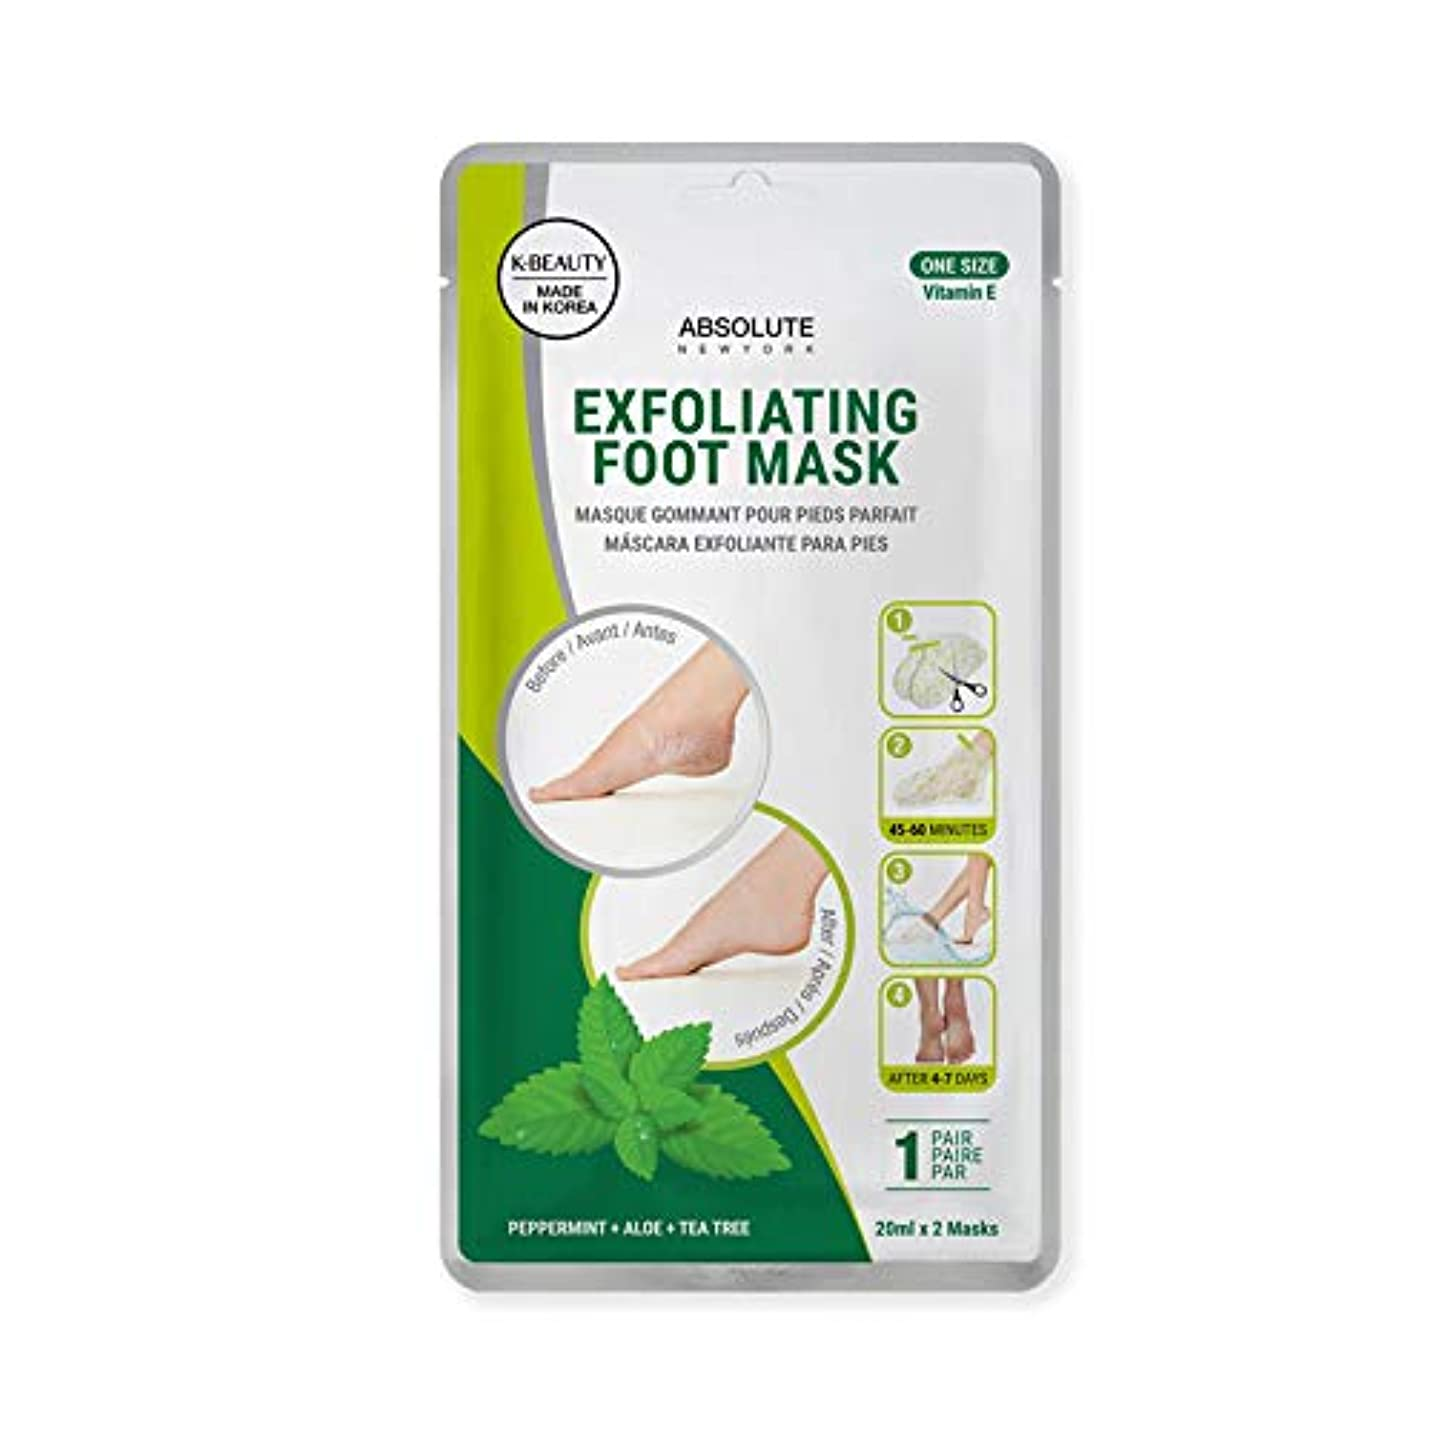 散歩に行く主婦不良品ABSOLUTE Exfoliating Foot Mask - Peppermint + Aloe + Tea Tree (並行輸入品)